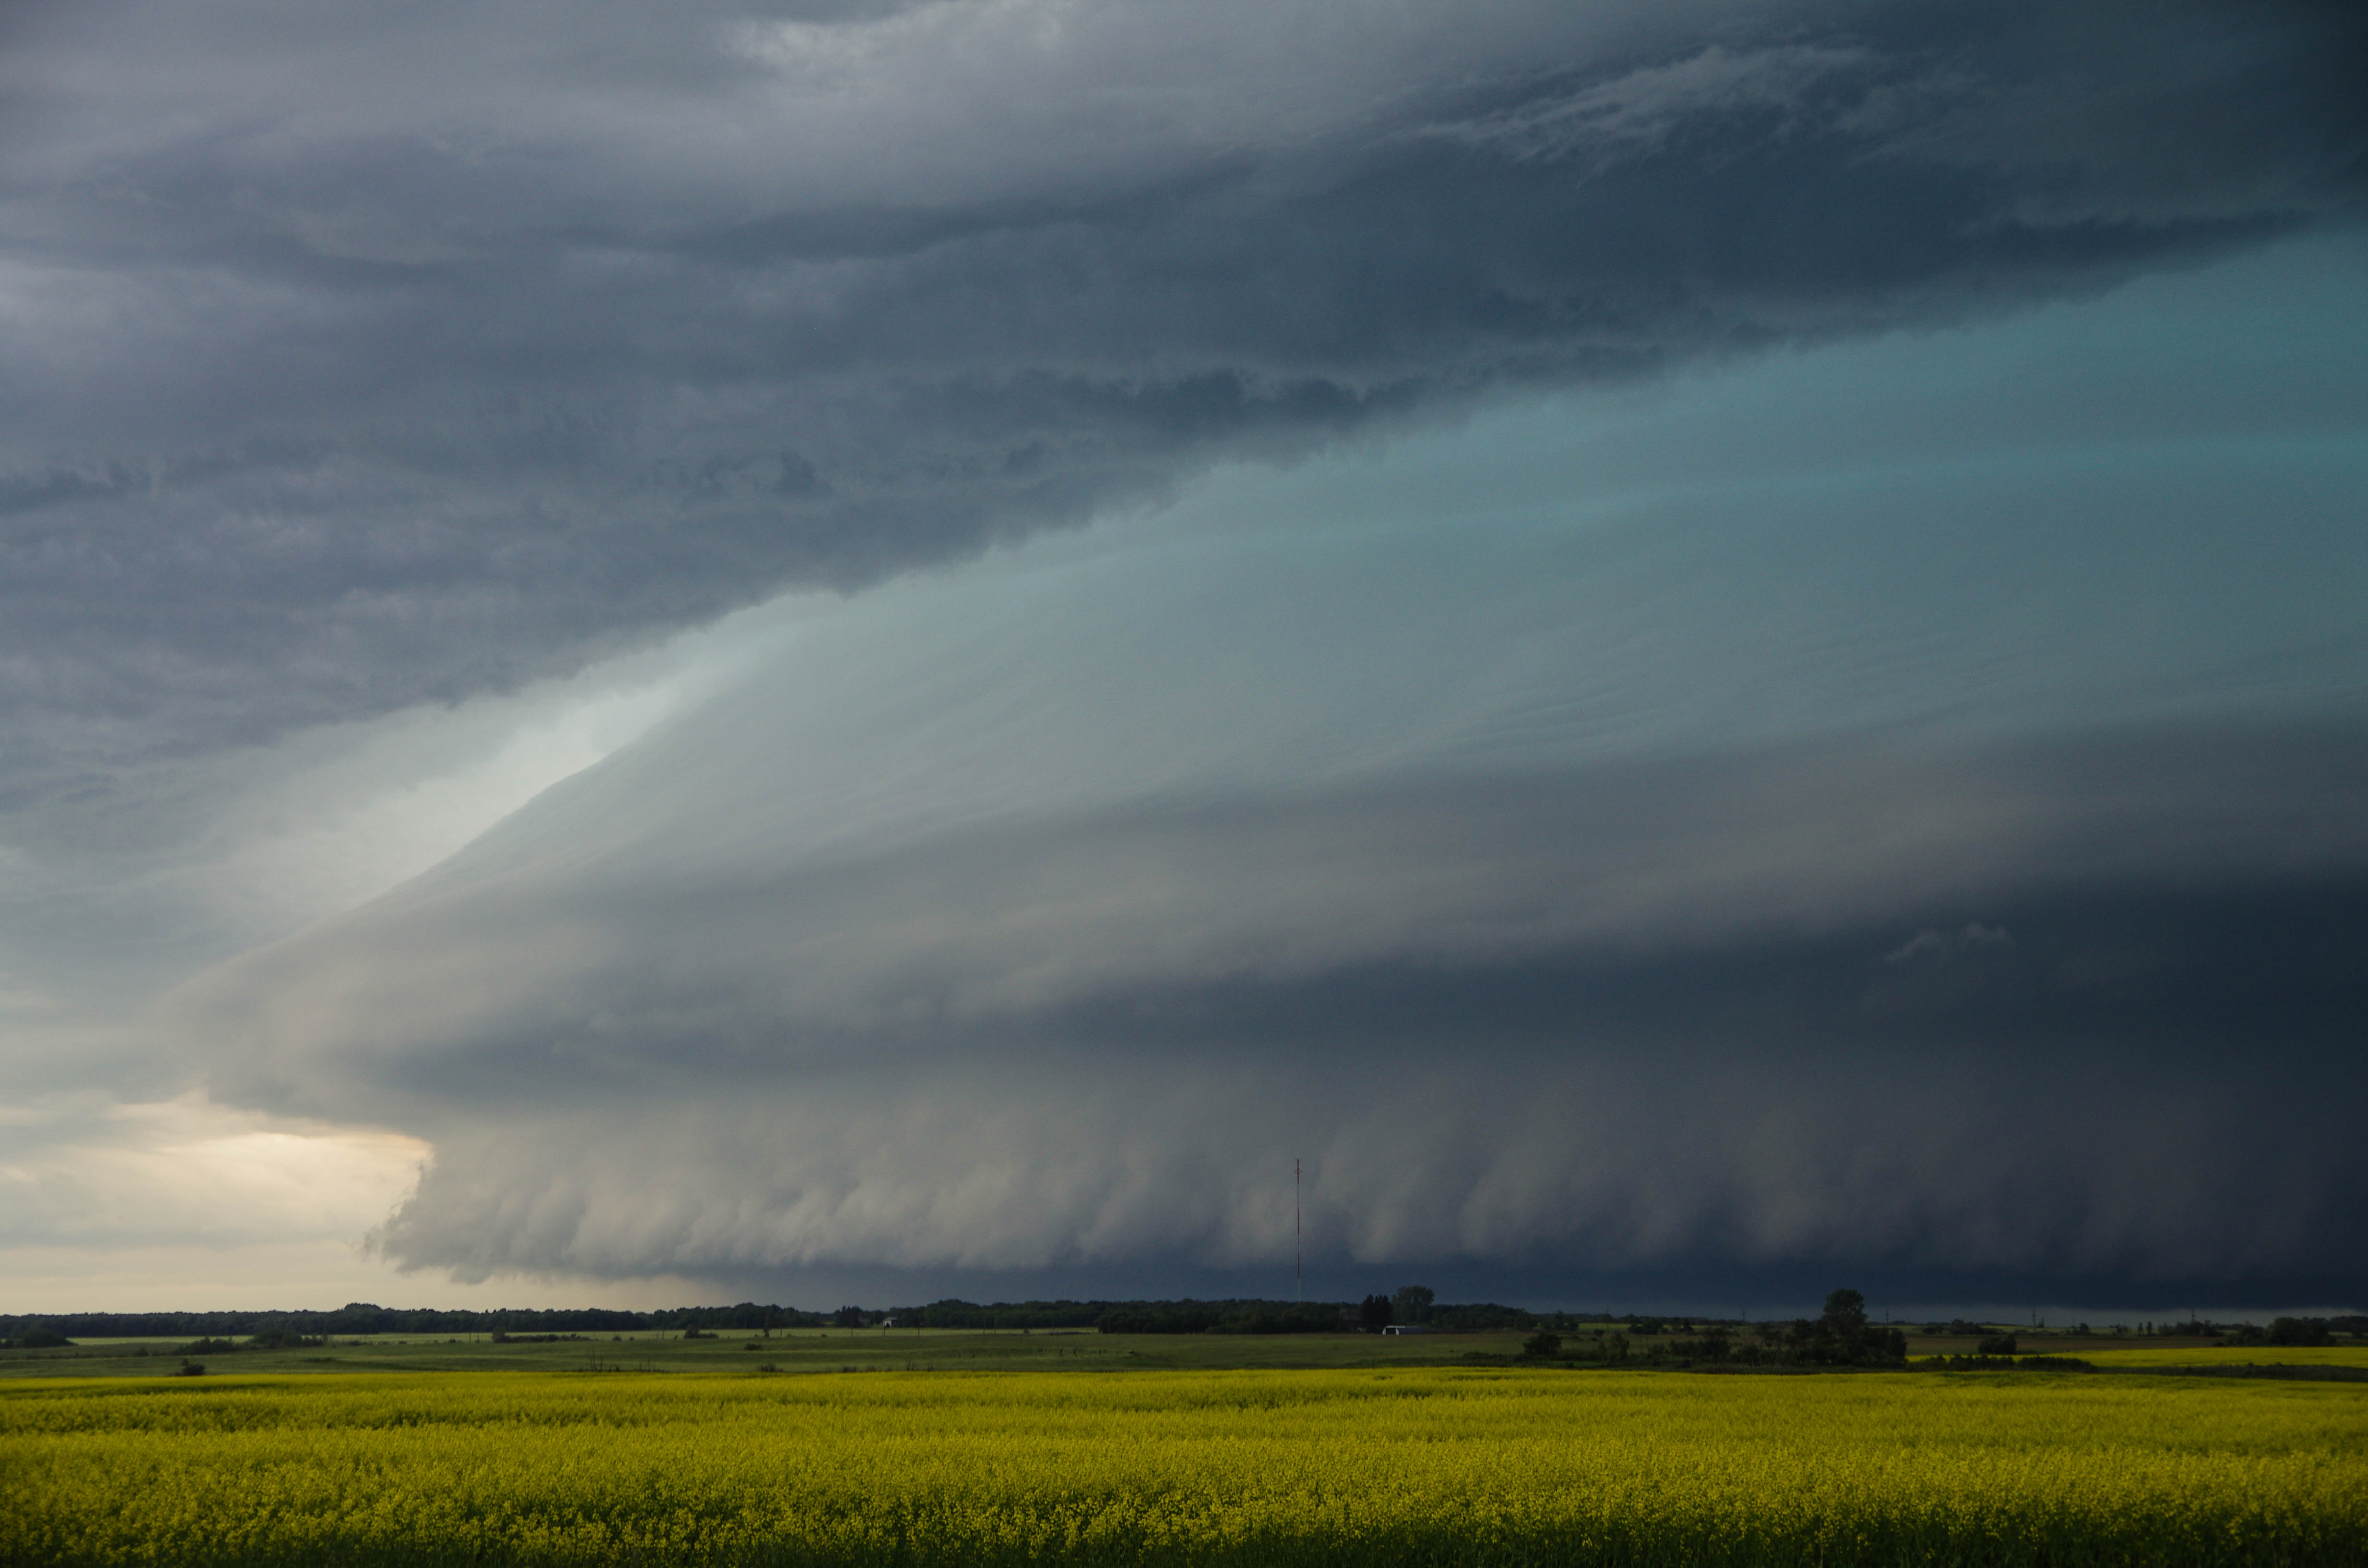 After Unusually Hot Day Tornado Weather >> Tornadoes Archives A Weather Moment